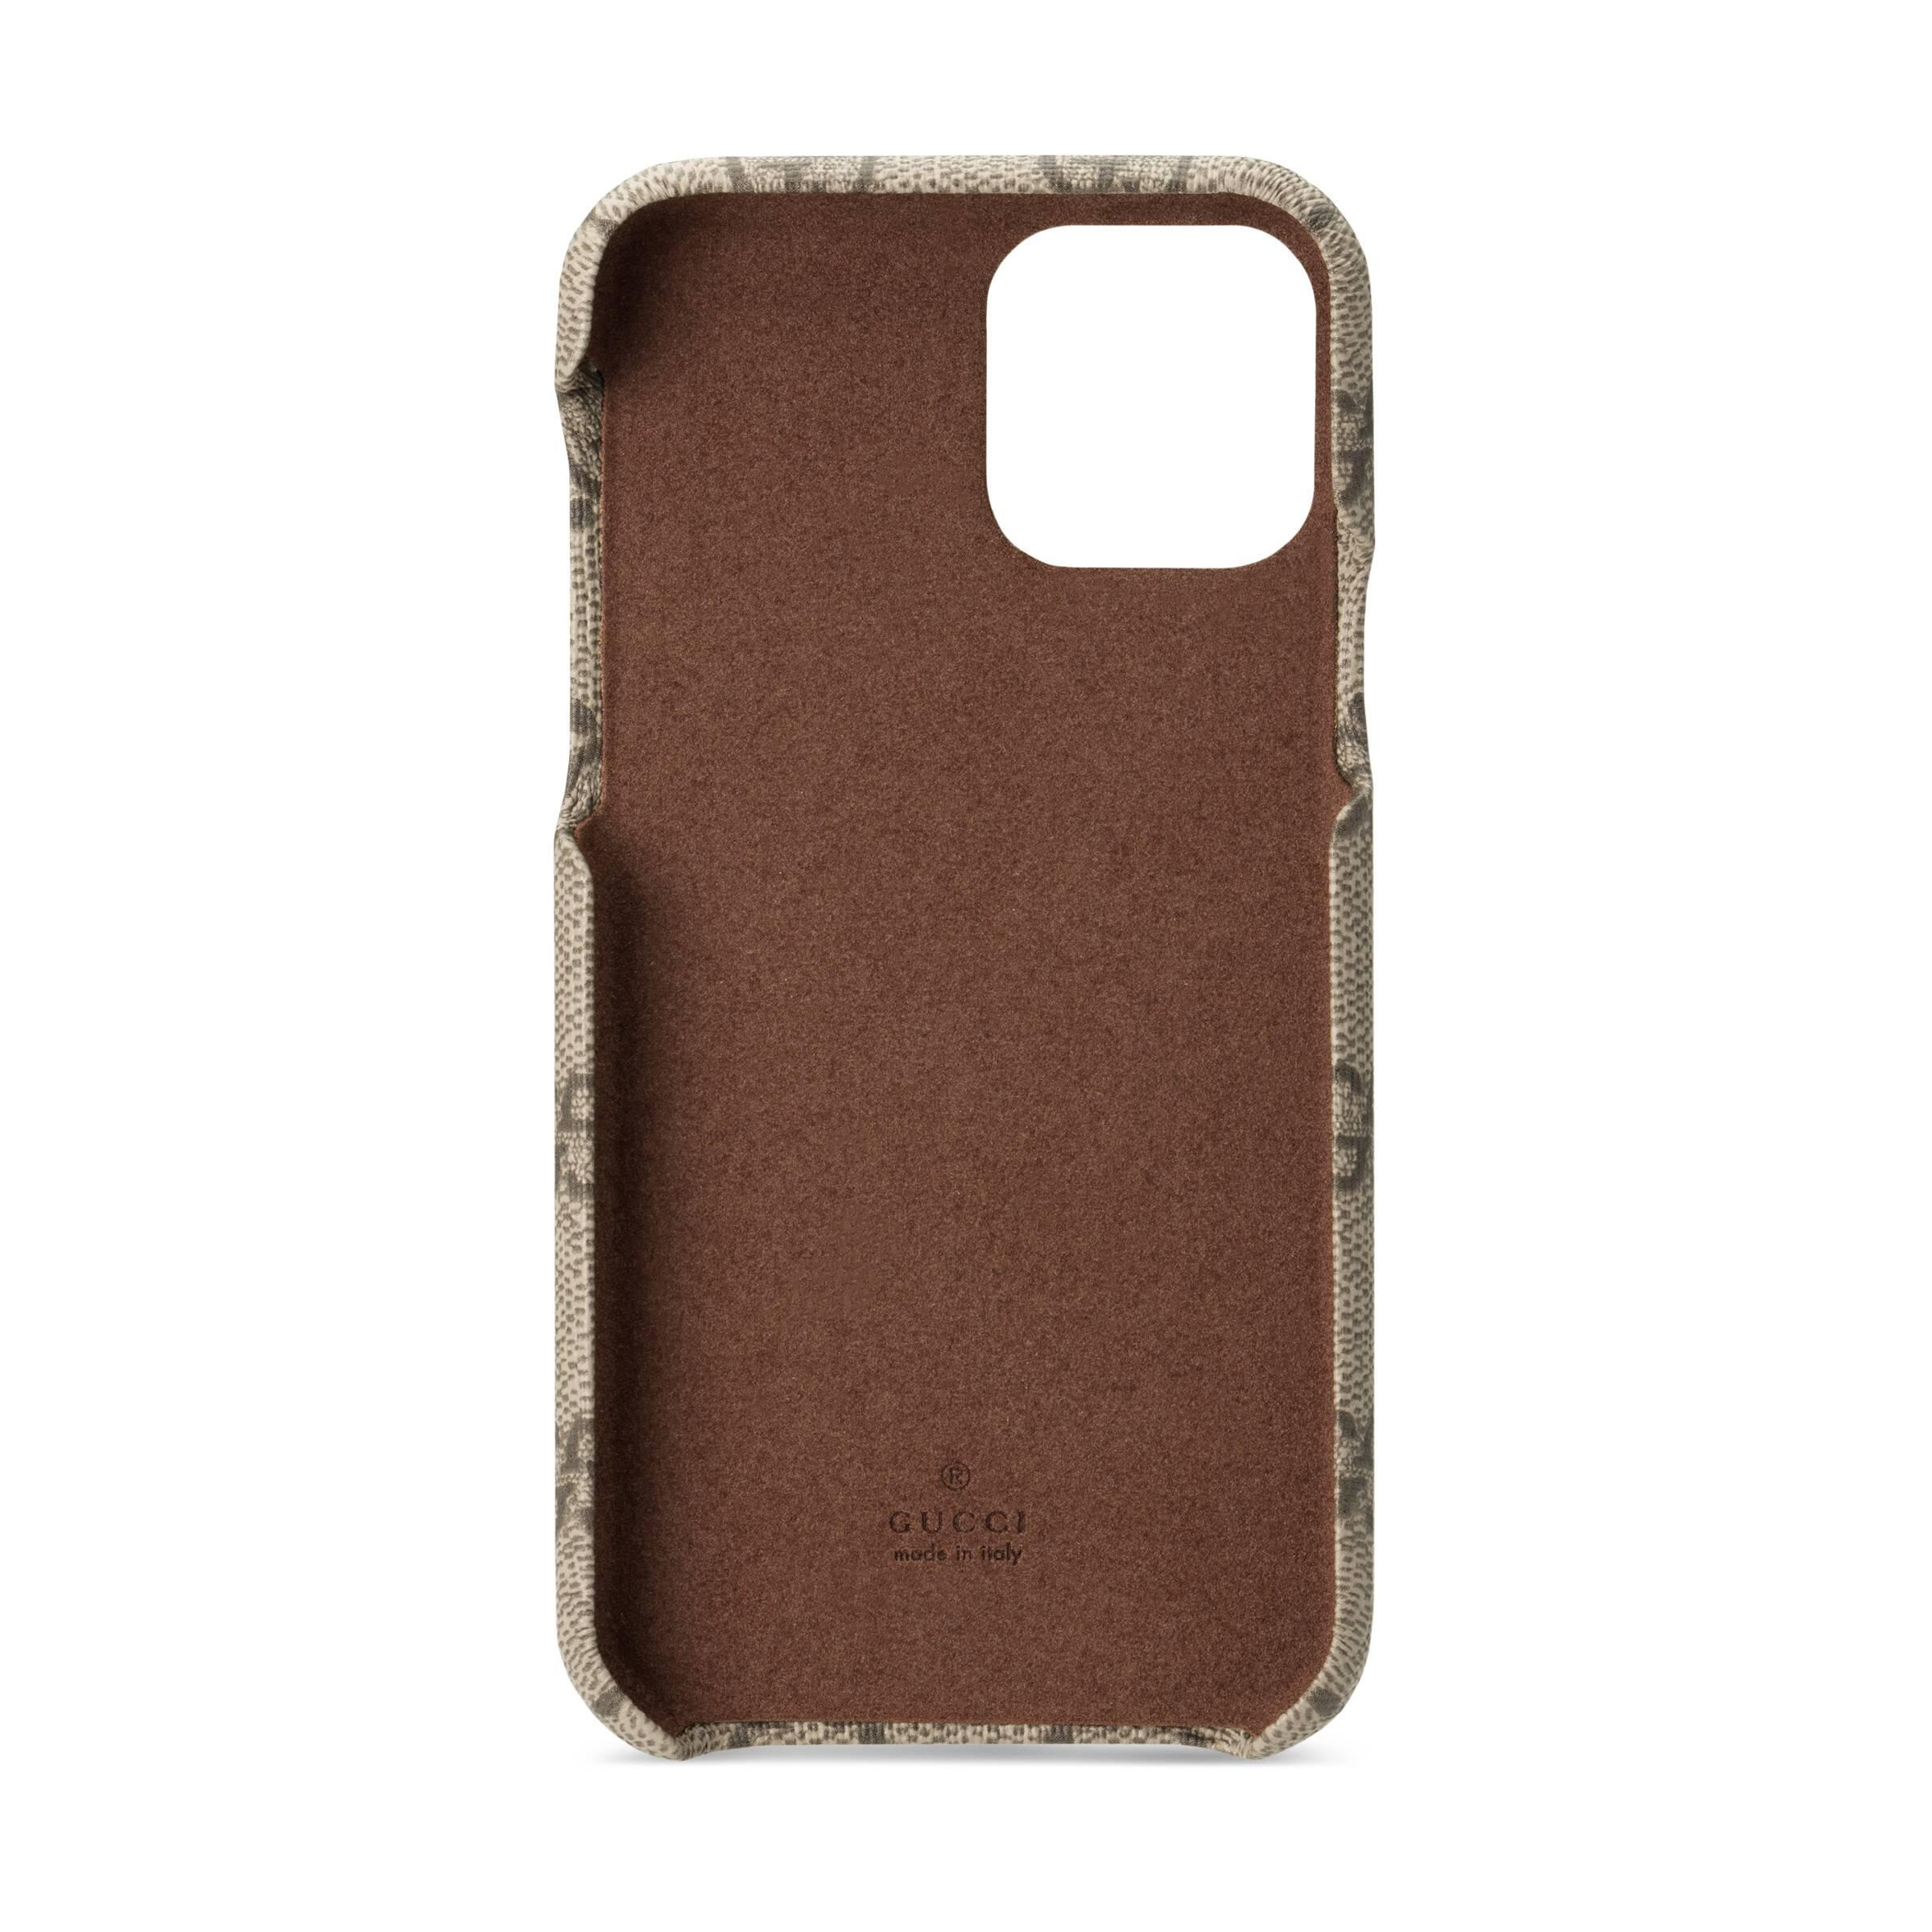 Gucci Canvas Ophidia Gg Iphone 11 Pro Case In Beige Natural Lyst